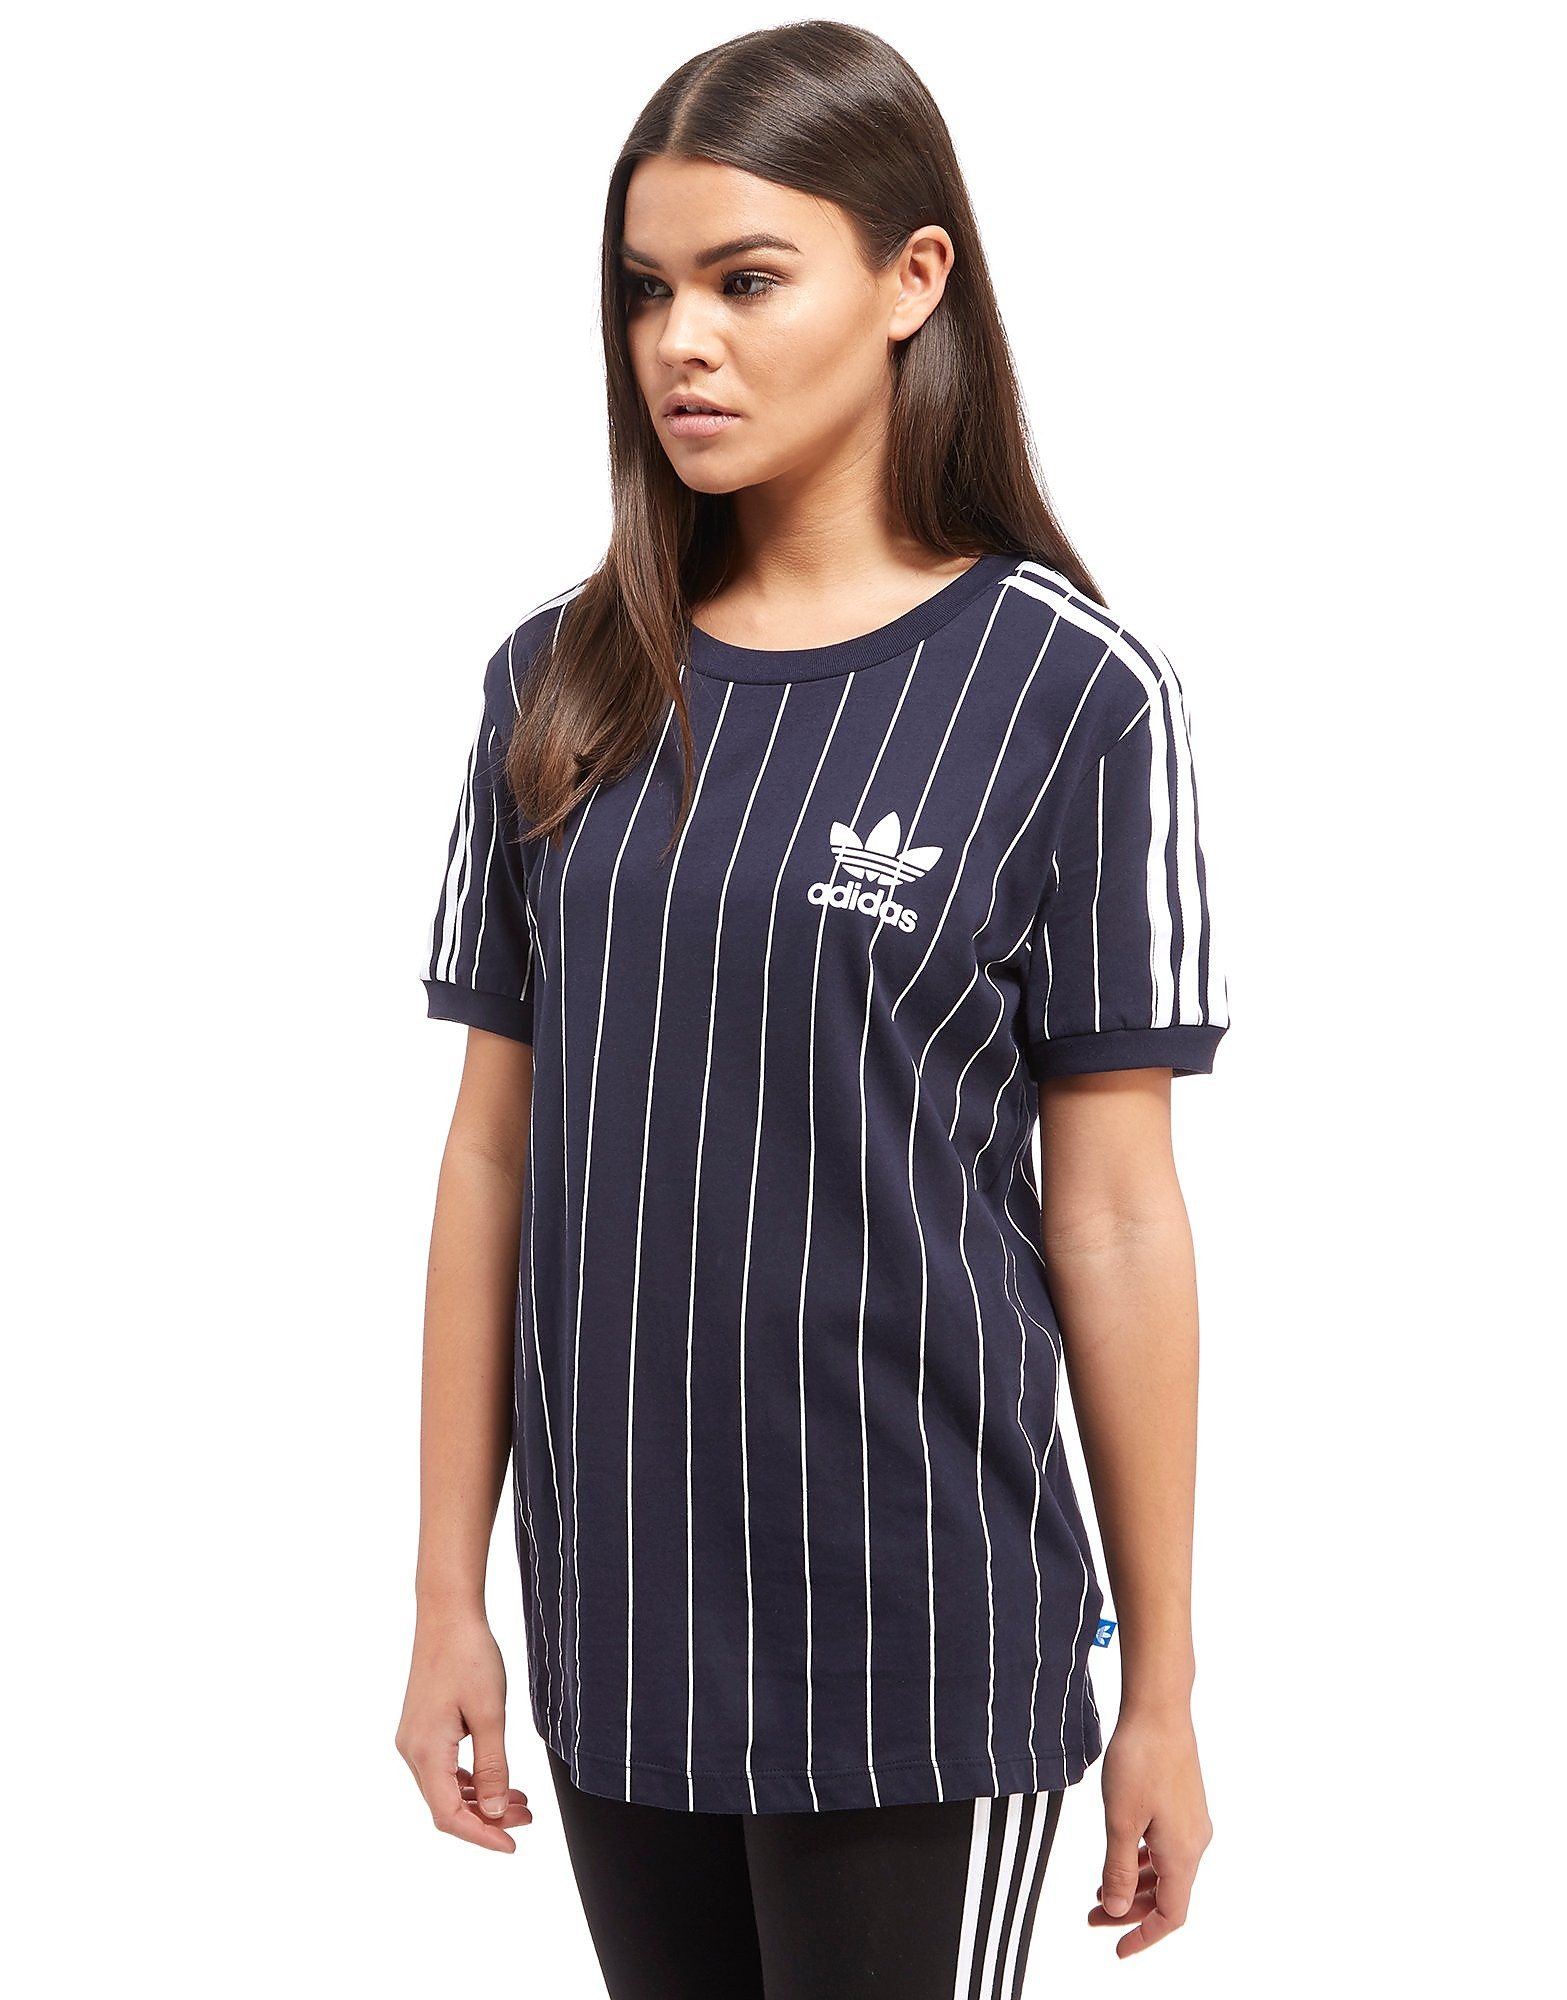 adidas Originals Tennis Cali T-Shirt